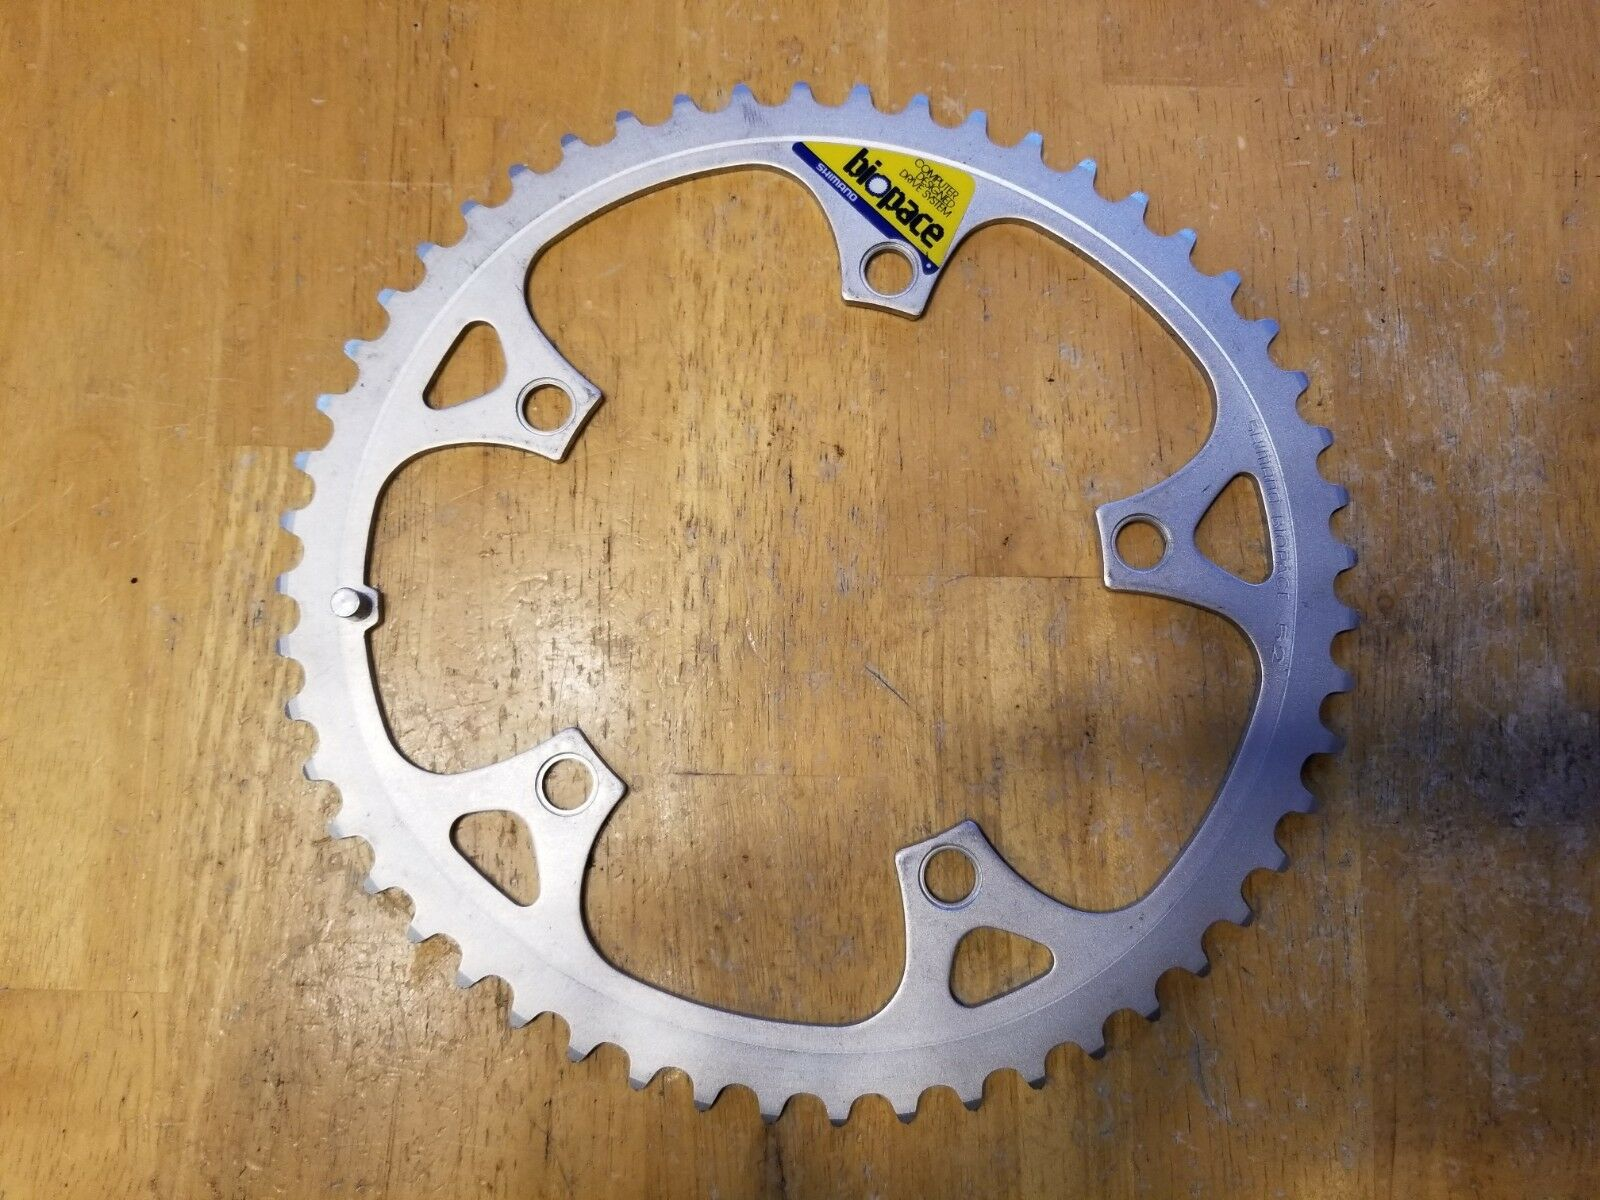 Shimano Biopace 52T Bicycle Chainring  130 BCD - Road Bike - NOS  new products novelty items